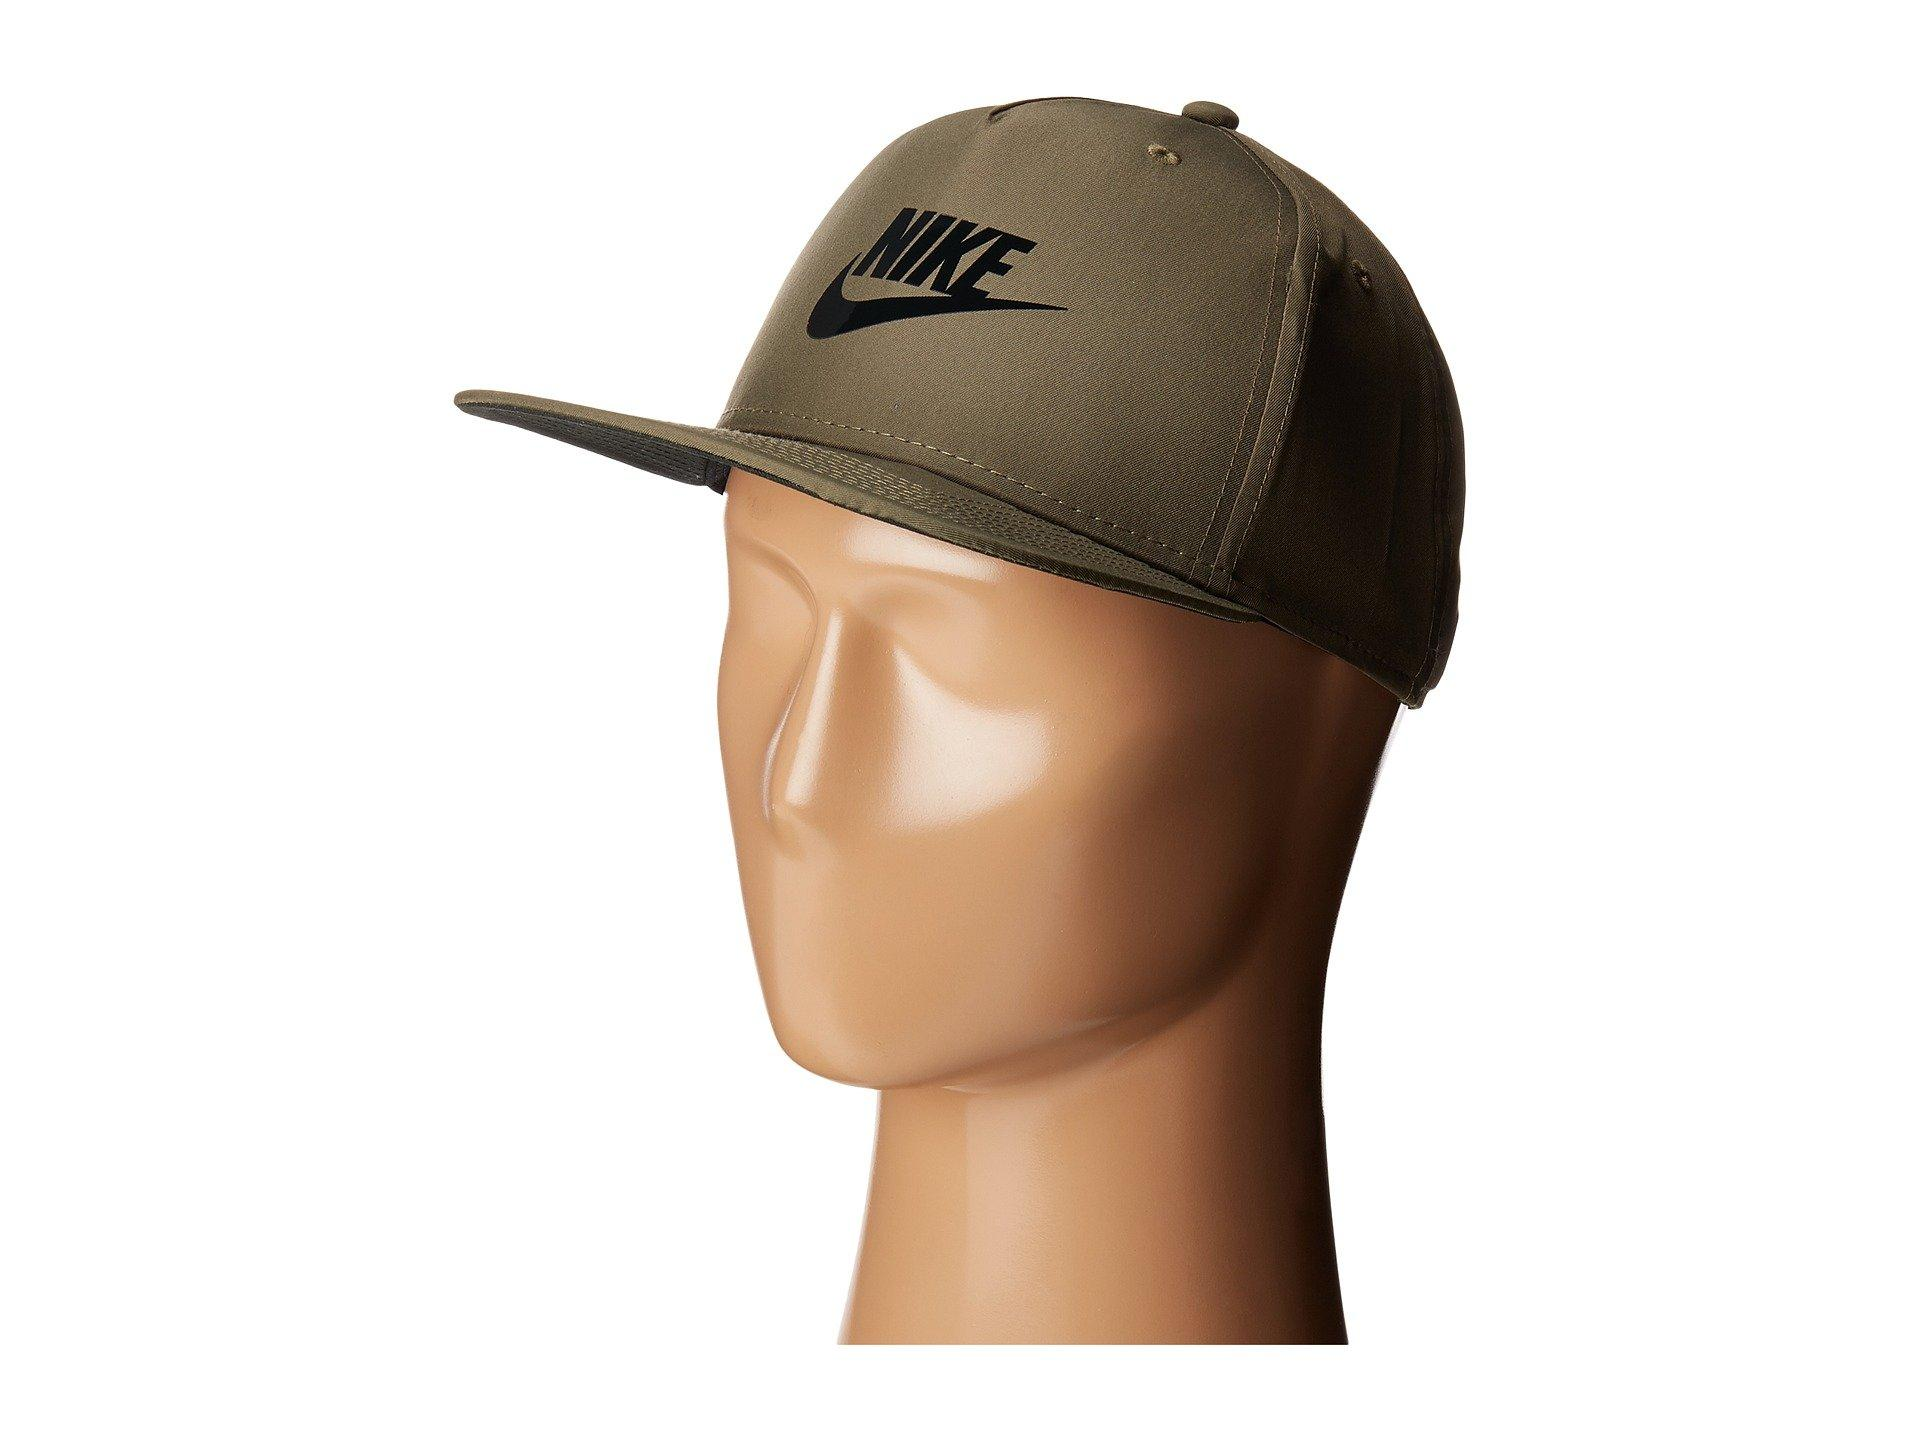 21762e5fea5c3 Nike Nsw Pro Blue Label Av15 Cap In Medium Olive Outdoor Green Outdoor Green